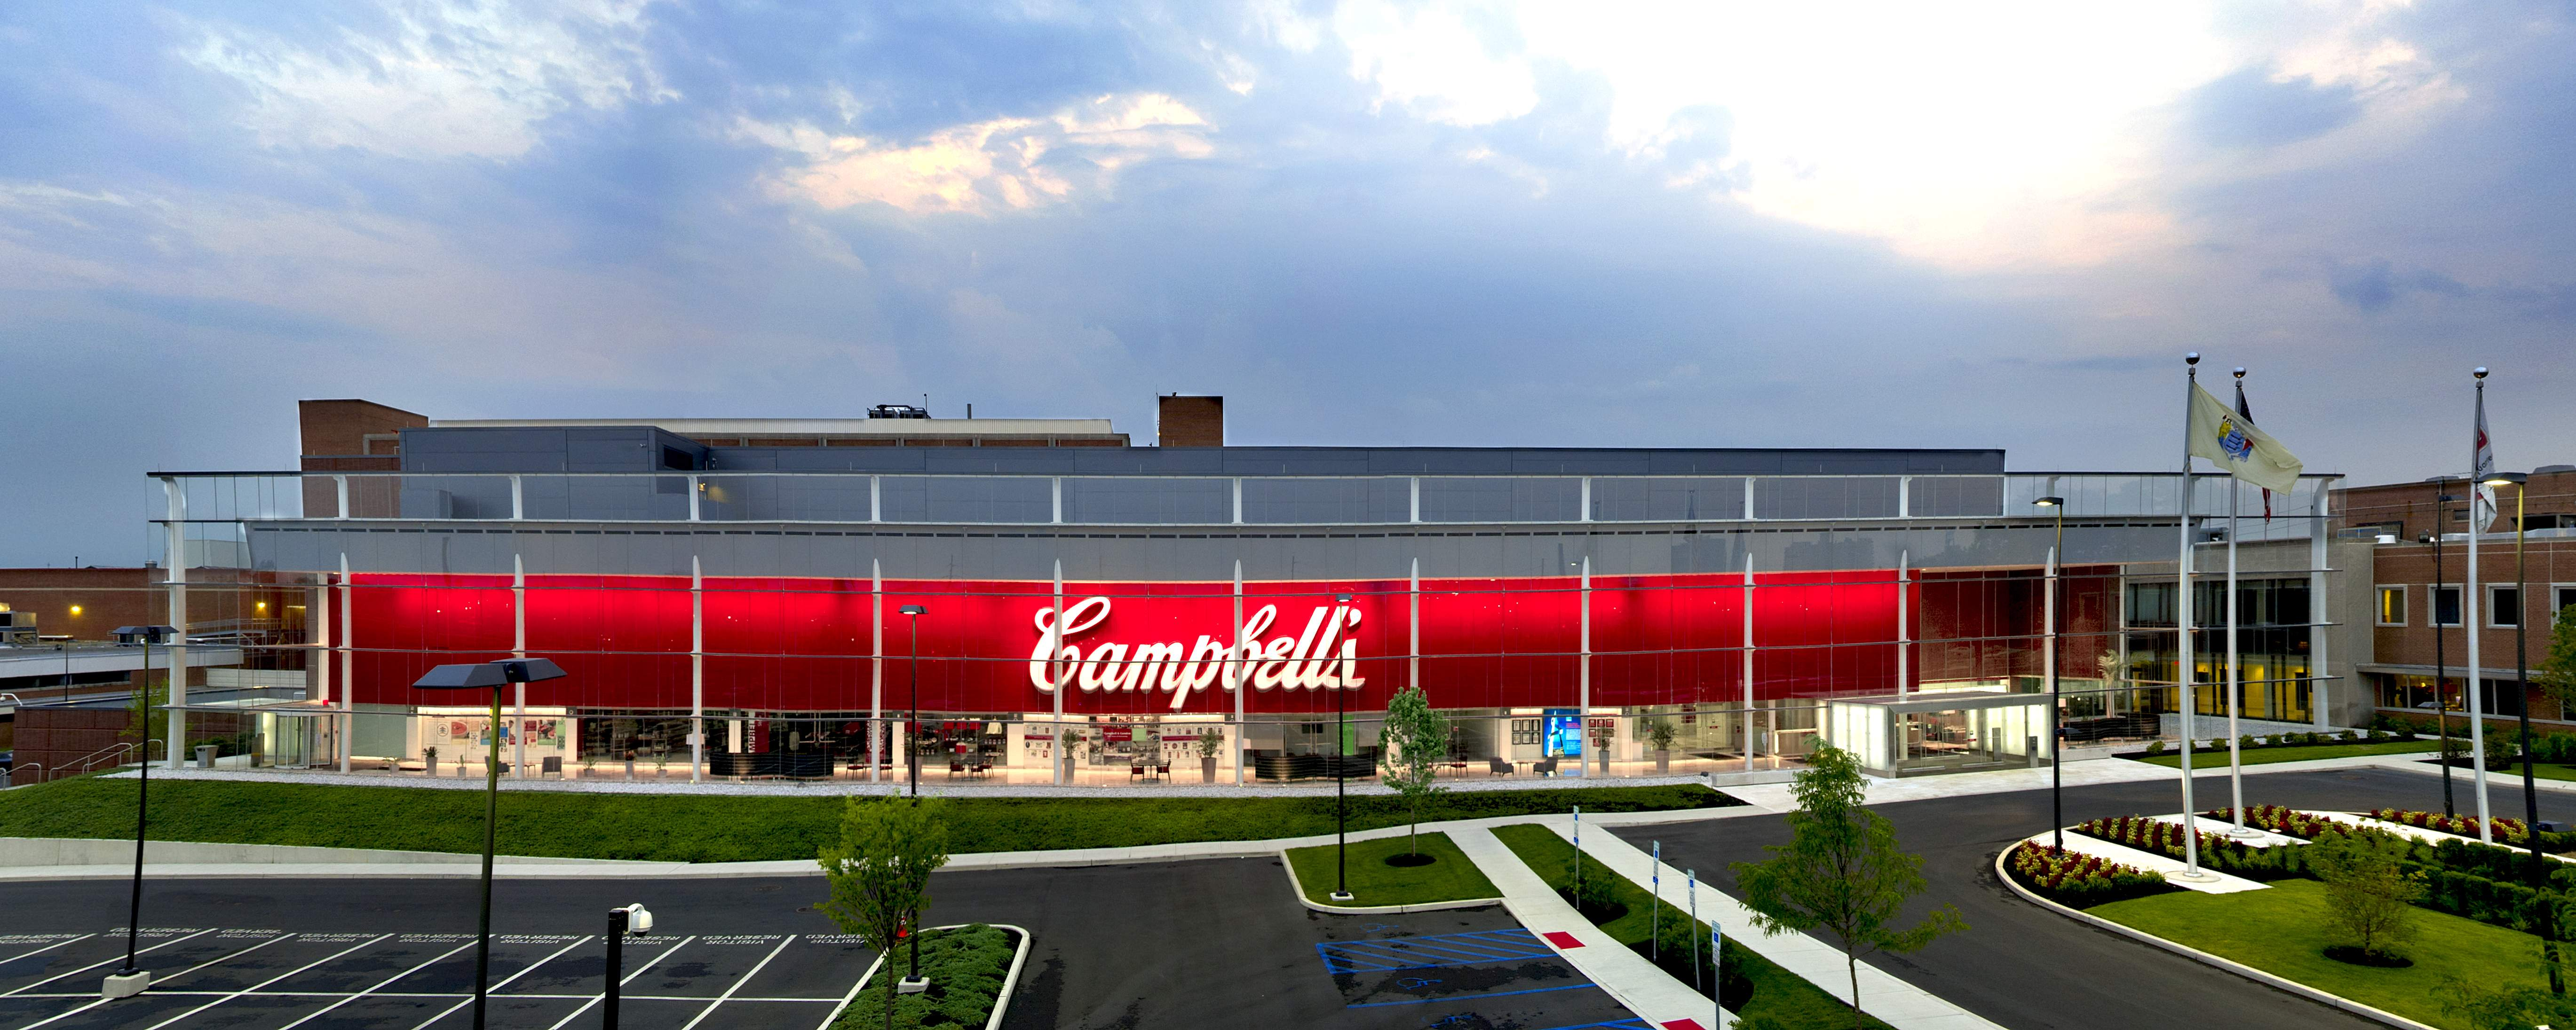 Campbell's Soup Co. headquarters.